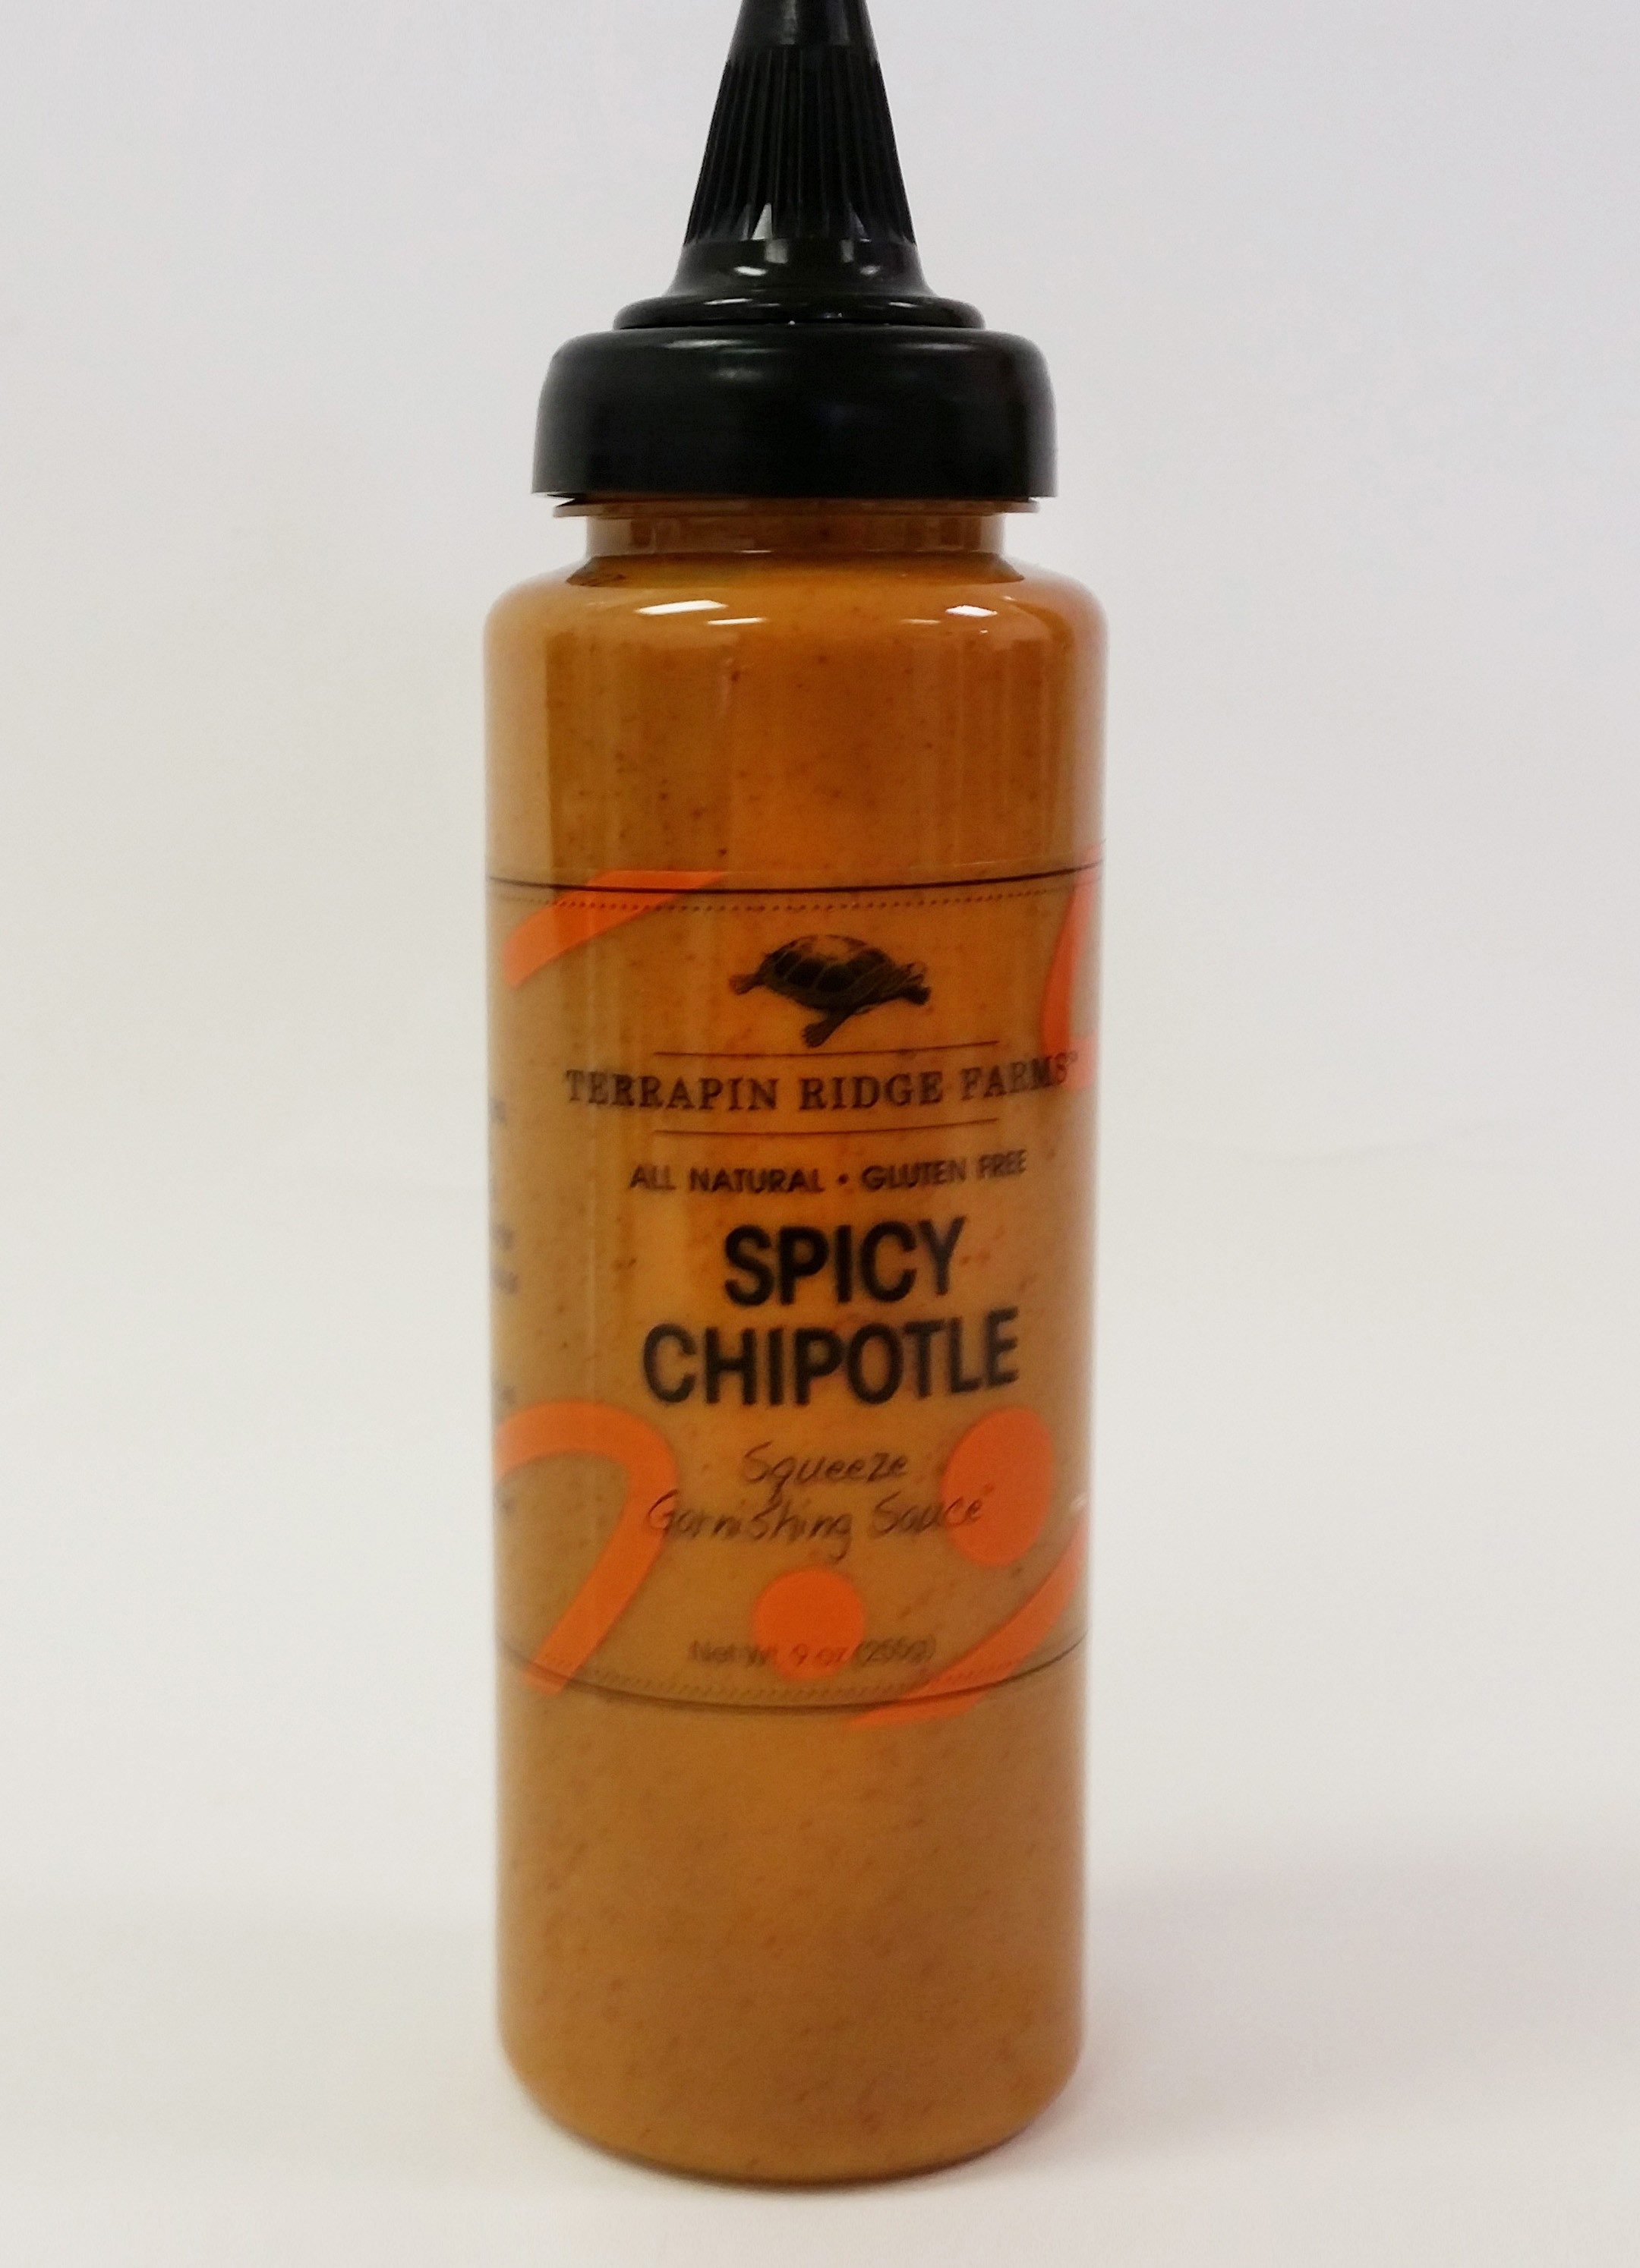 Spicy Chipotle Garnishing Squeeze